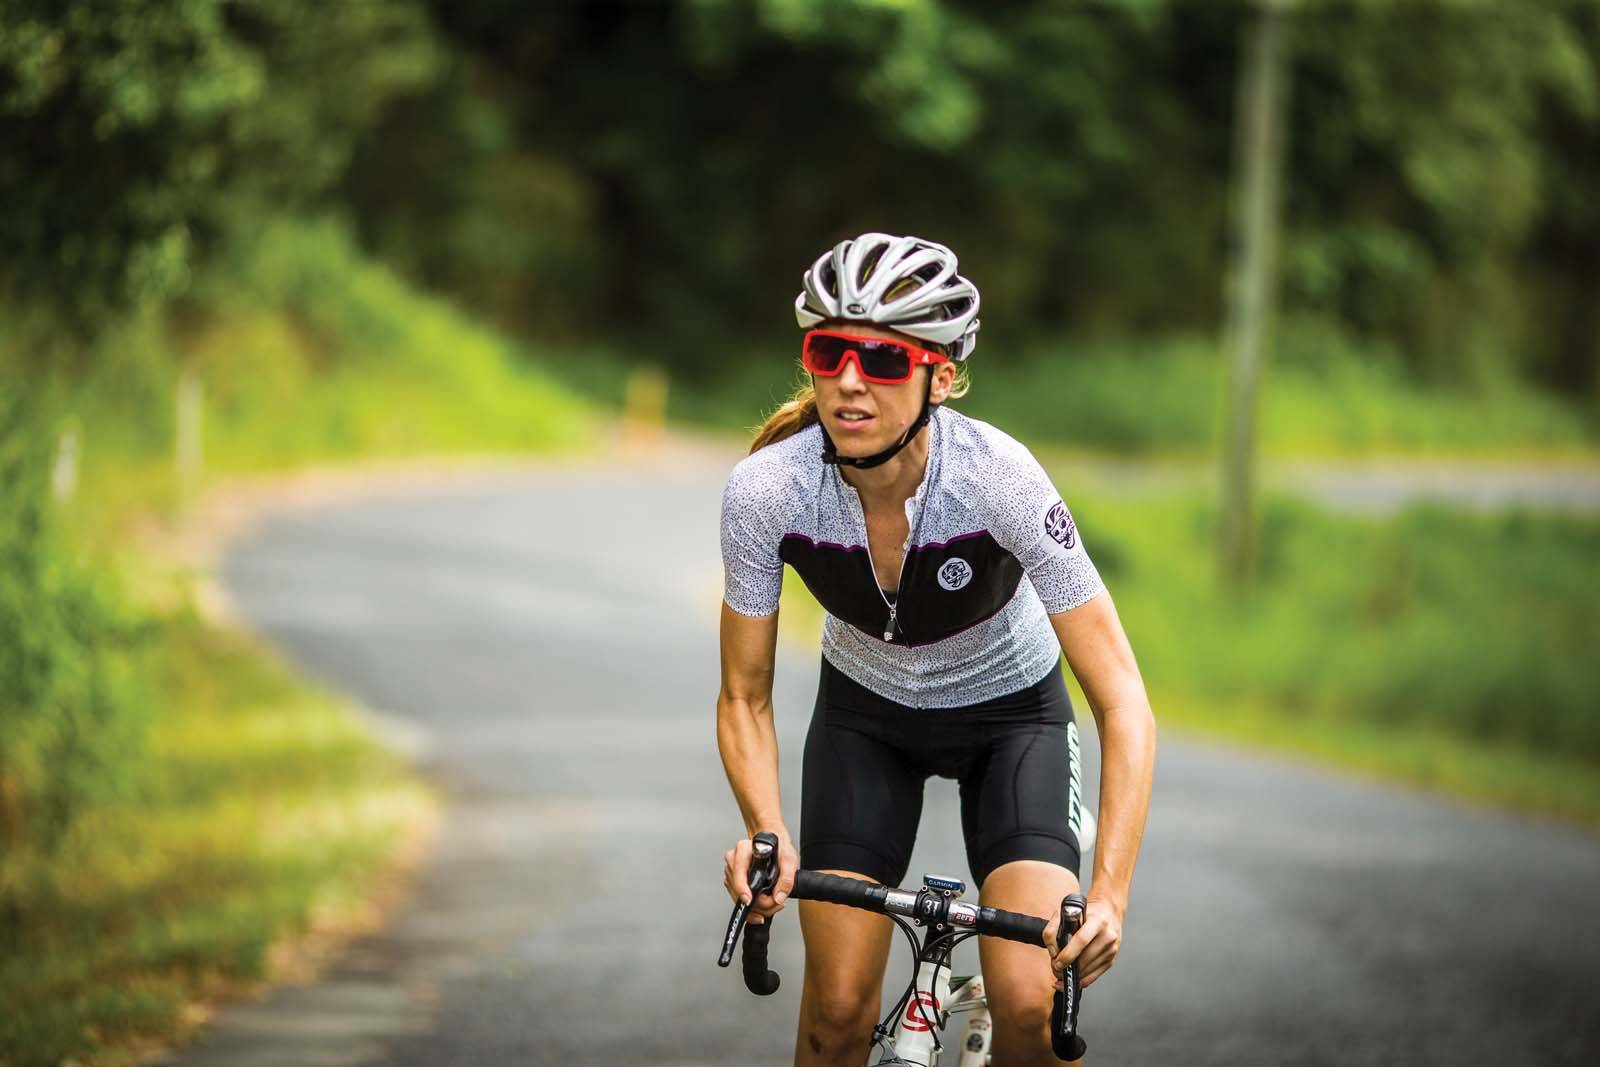 TESTED  Attaquer Women s Cycling Clothing - More Sport - Inside Sport cacc6ecd0